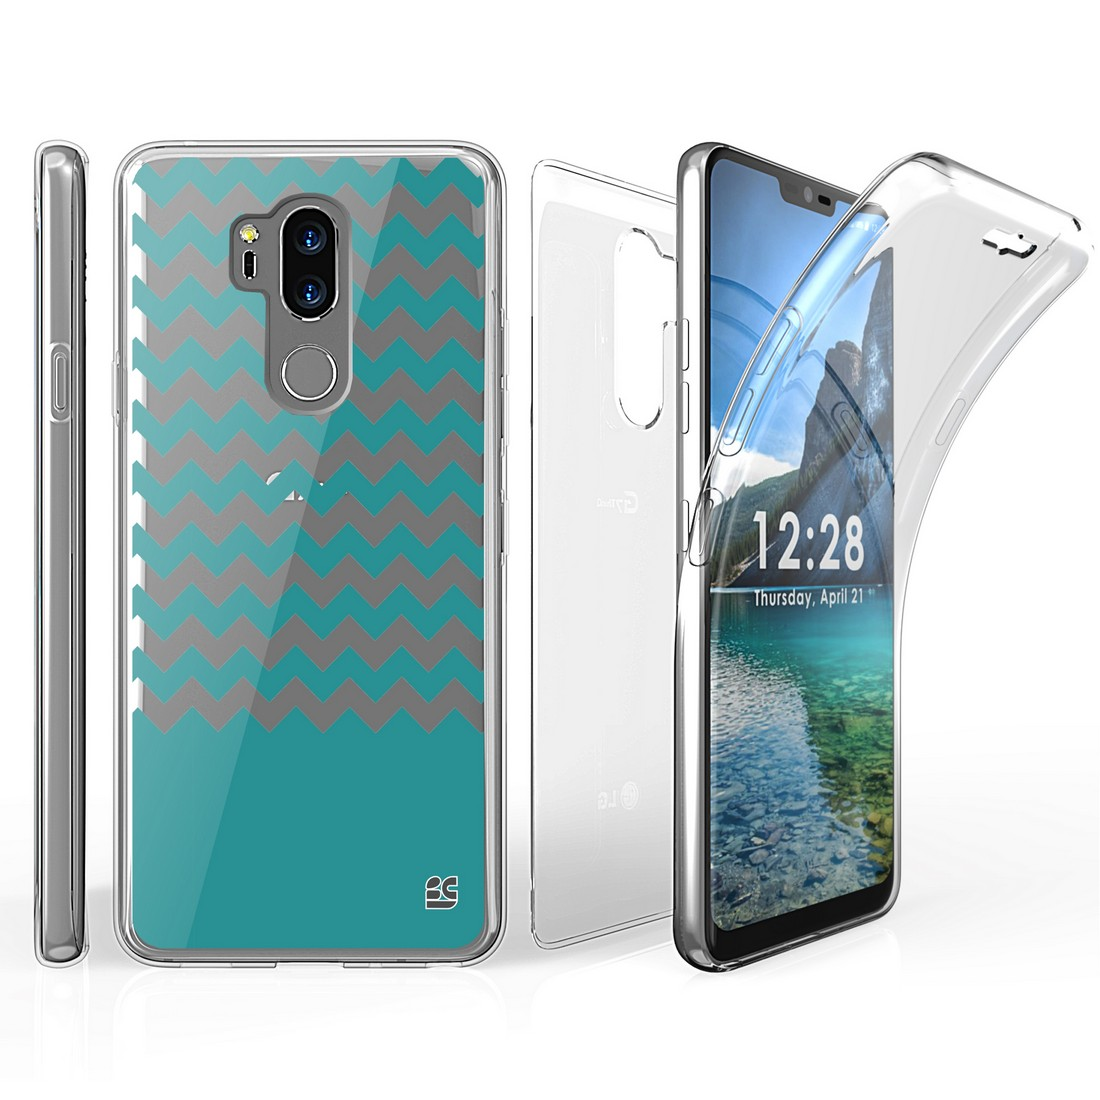 Tri Max LG G7 ThinQ Case with Ultra Slim 360 Degree Full Body Protection Cover with Self-Healing Flexible Gel Clear Screen Protector and Atom Cloth for LG G7 ThinQ - Teal Chevron